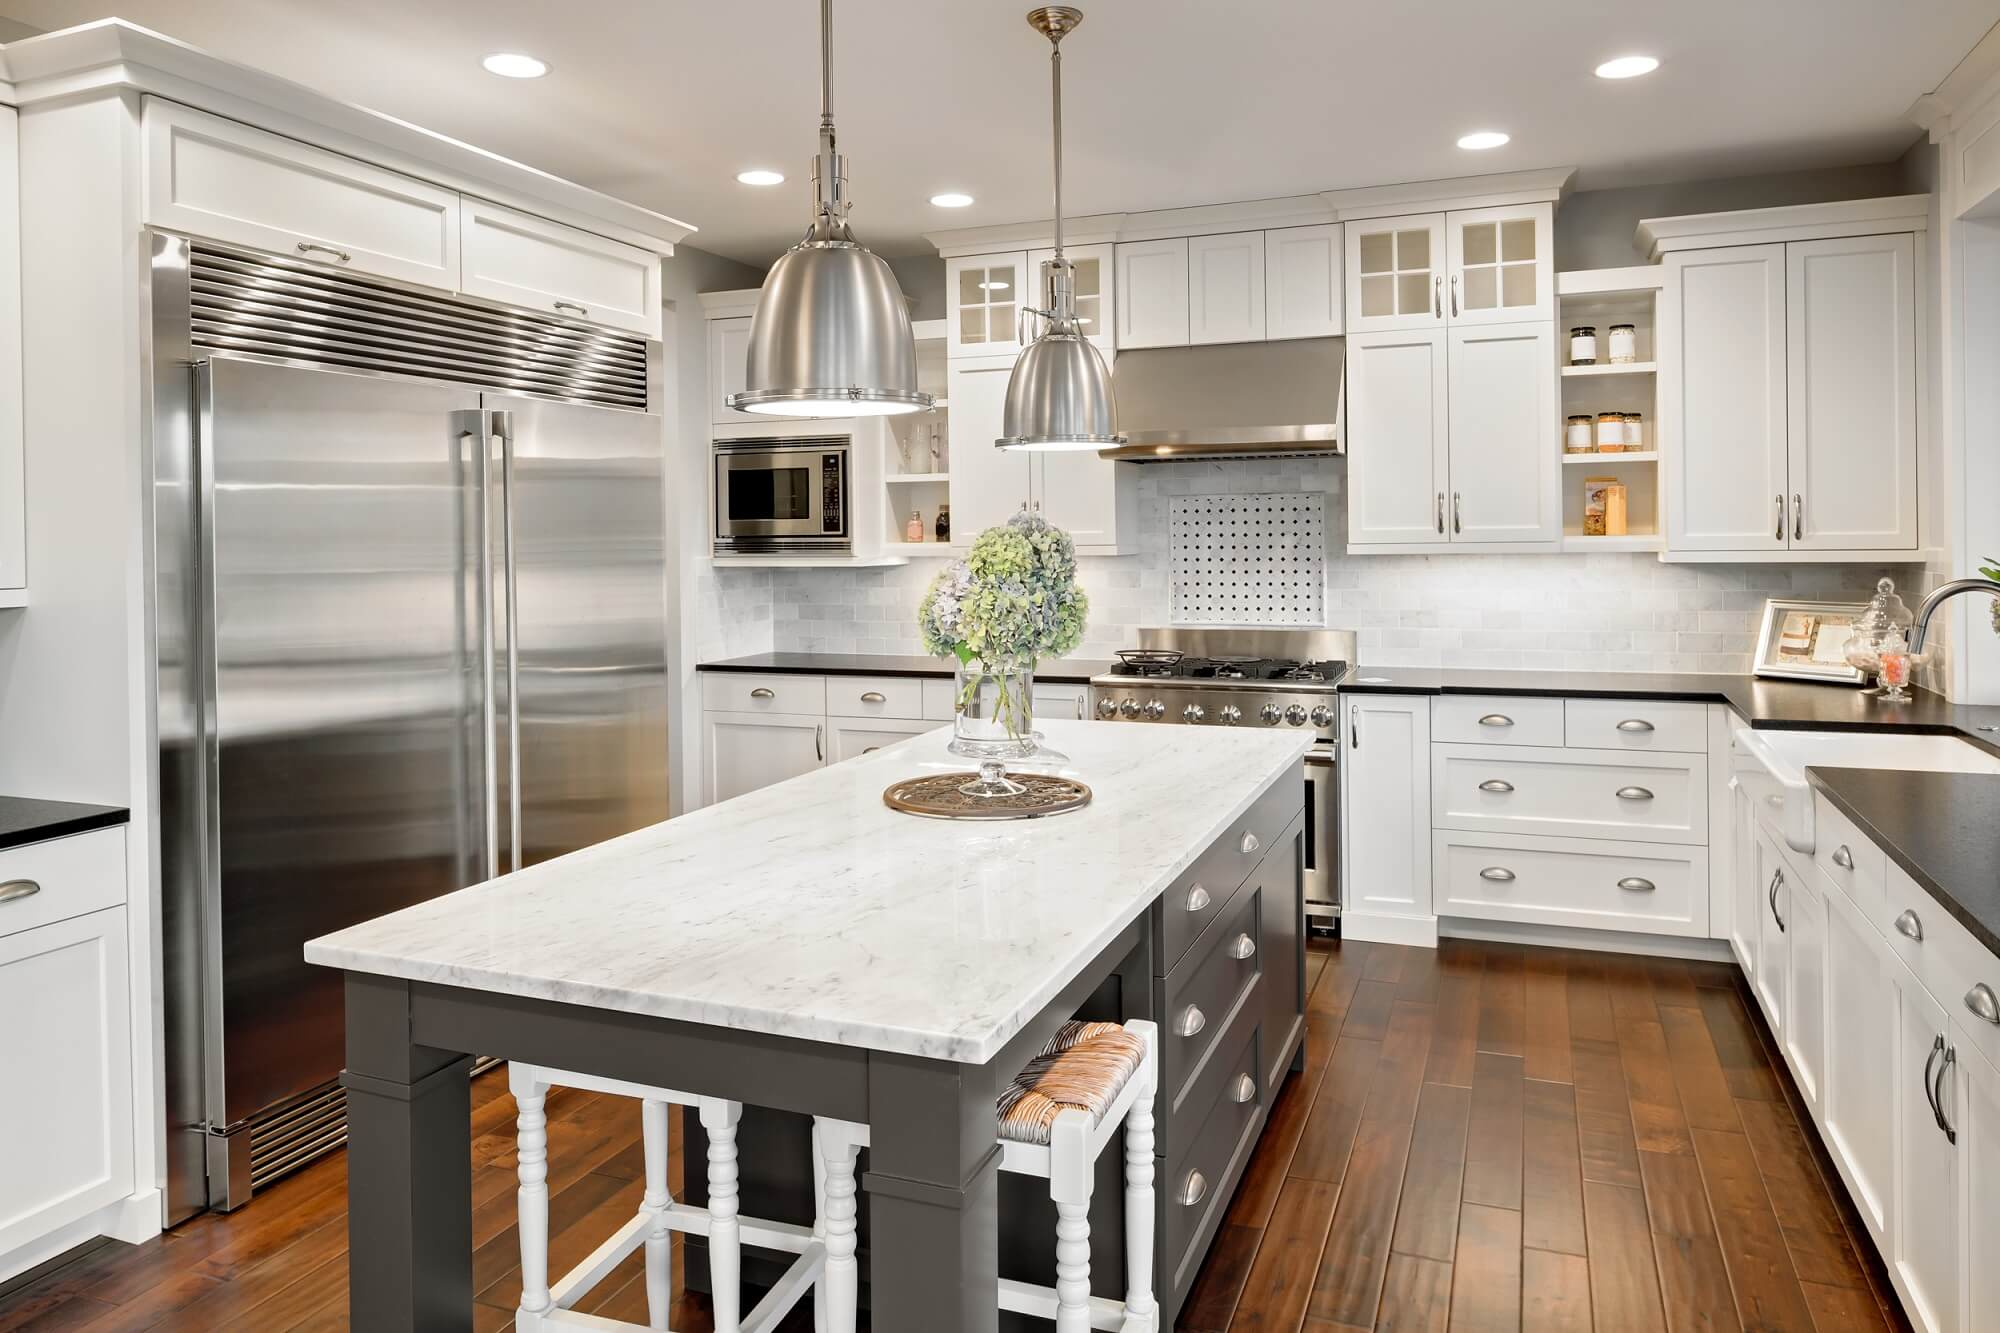 Install Floors or Cabinets First? Kitchen Reno Tips  BuildDirect